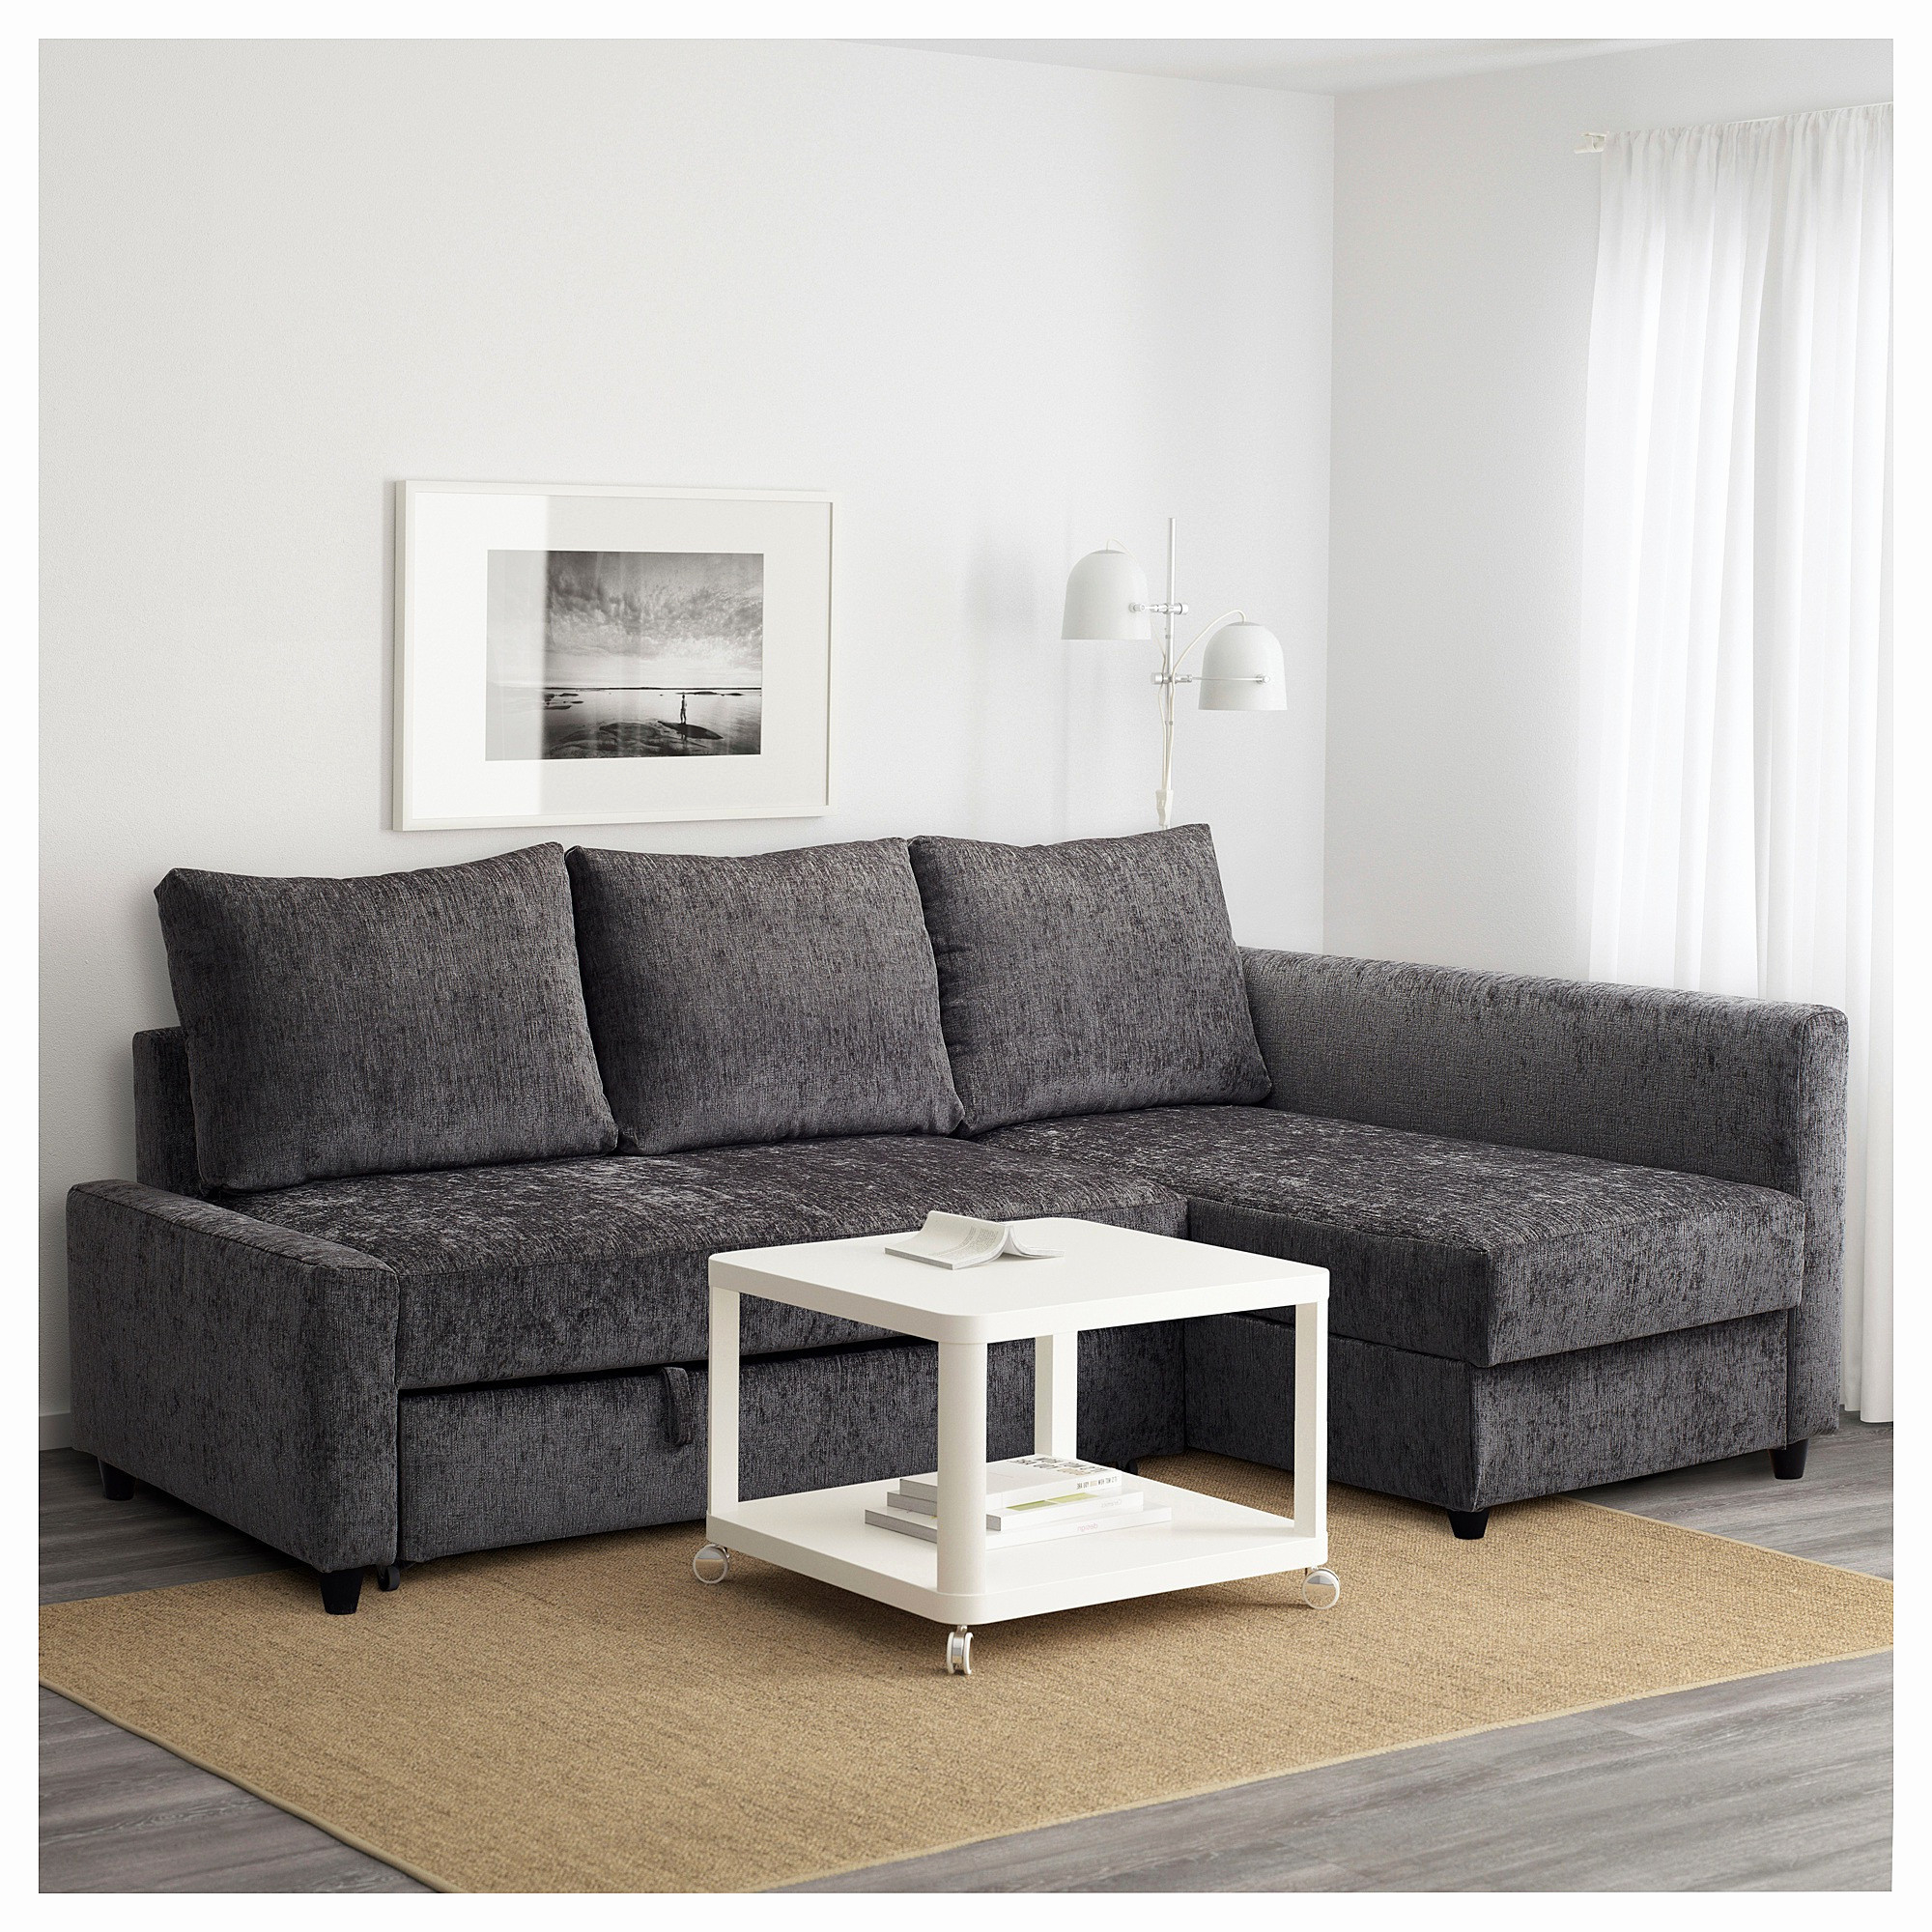 Sofa Cama Desplegable U3dh sofa Cama Desplegable Con Motivo De Importante 50 Luxury Ikea Pink